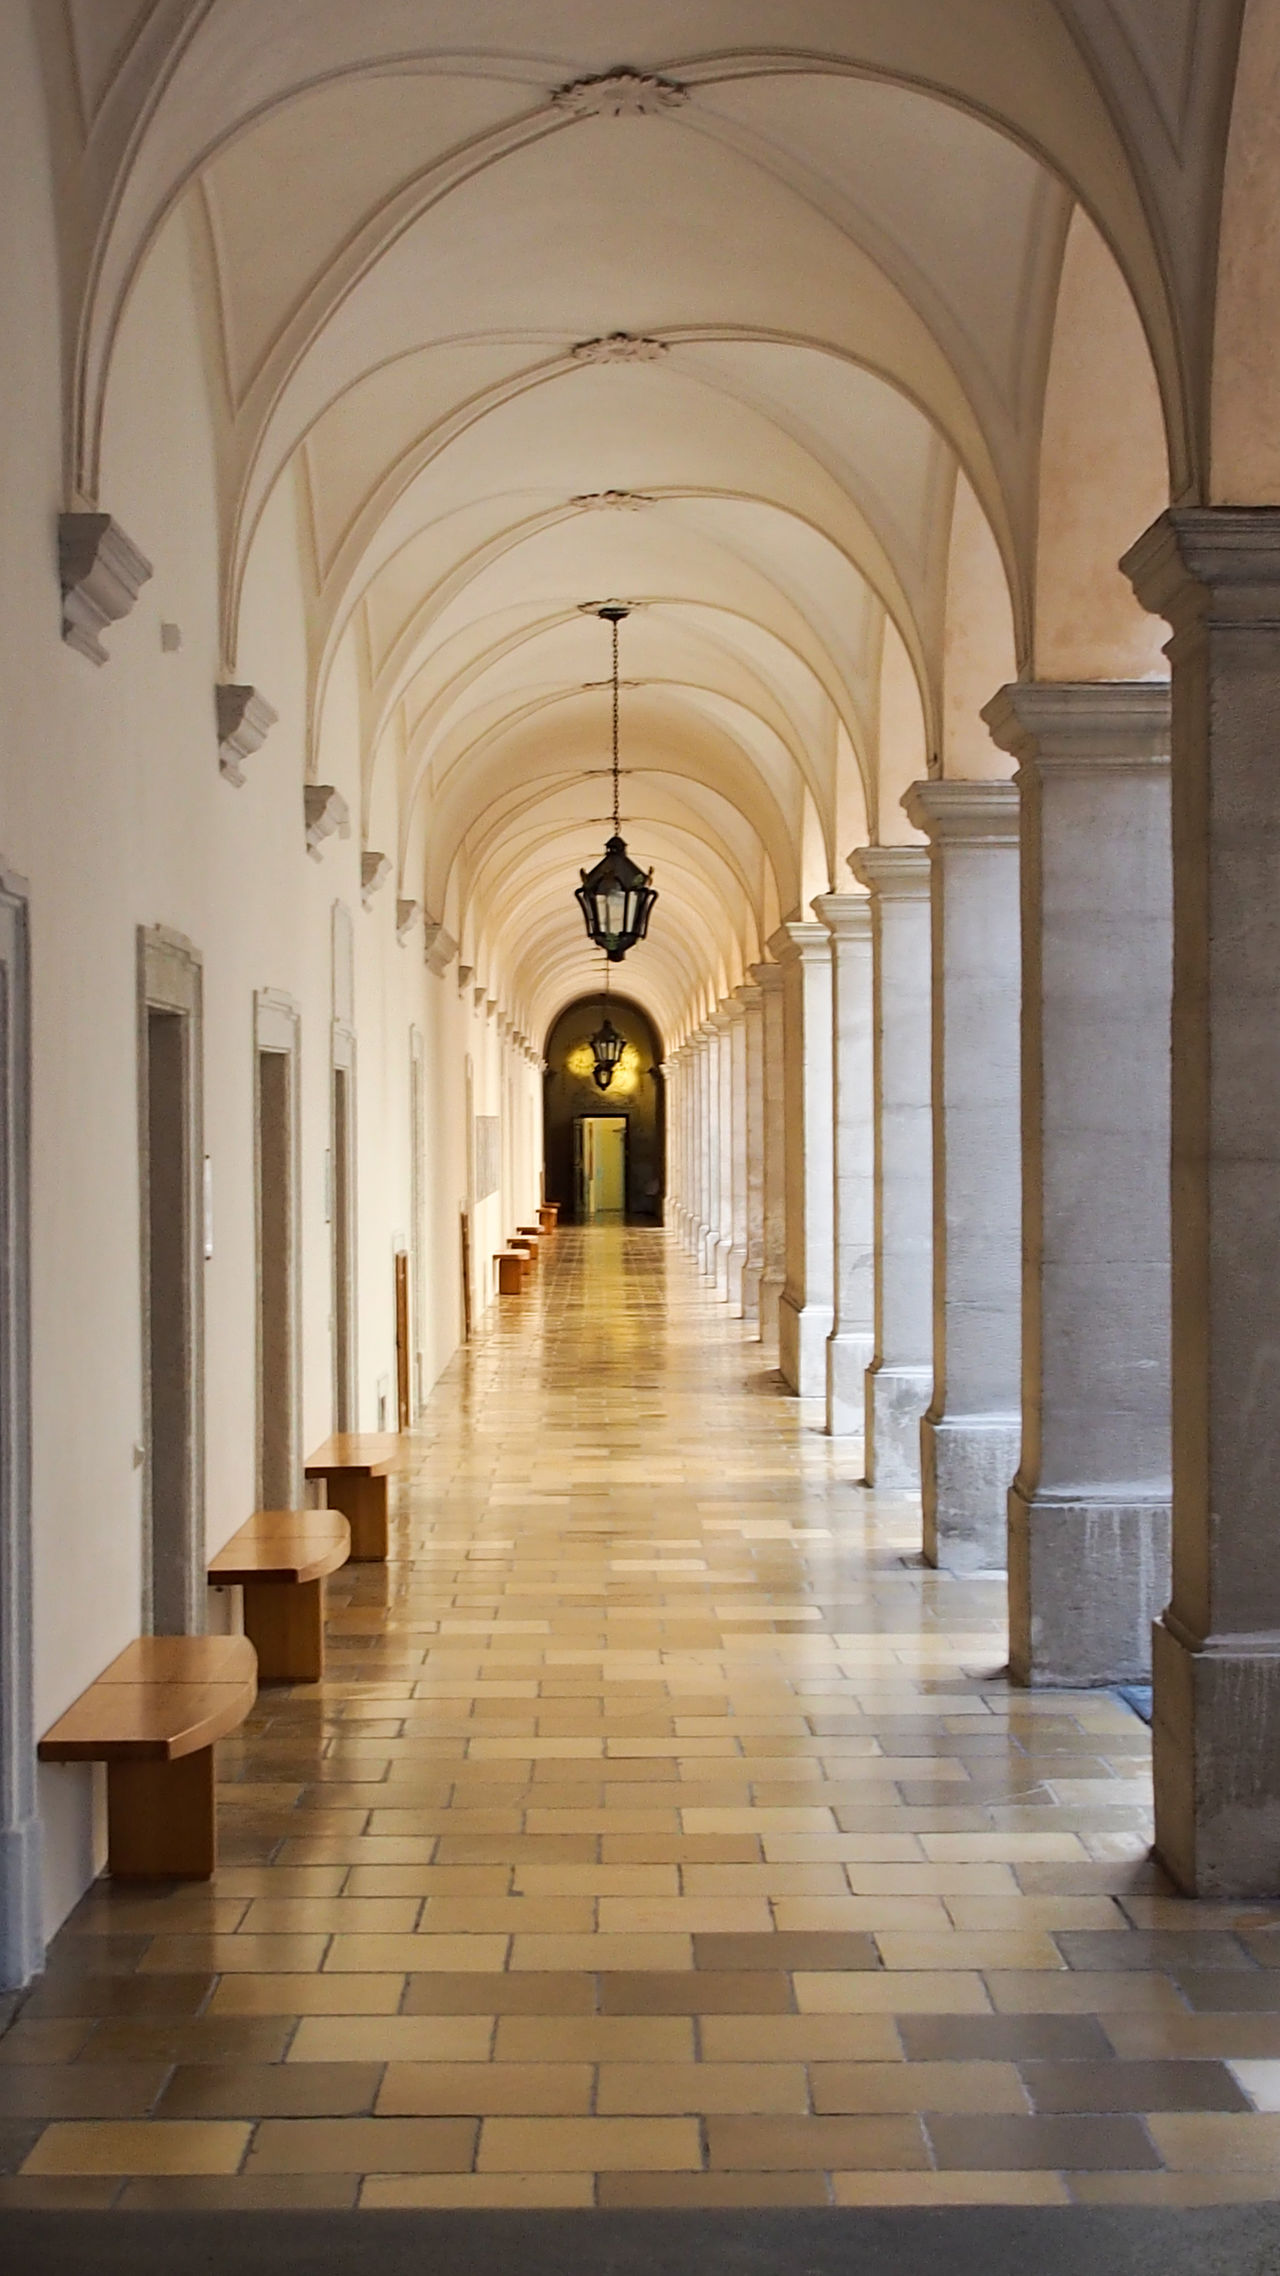 Arcade Arch Arched Architectural Column Architecture Archway Bradley Olson Bradleywarren Photography Ceiling Colonnade Column Corridor Day Diminishing Perspective Flooring In A Row Indoors  Long Pendant Light Repetition SUPPORT The Way Forward Tiled Floor Tourism Vanishing Point